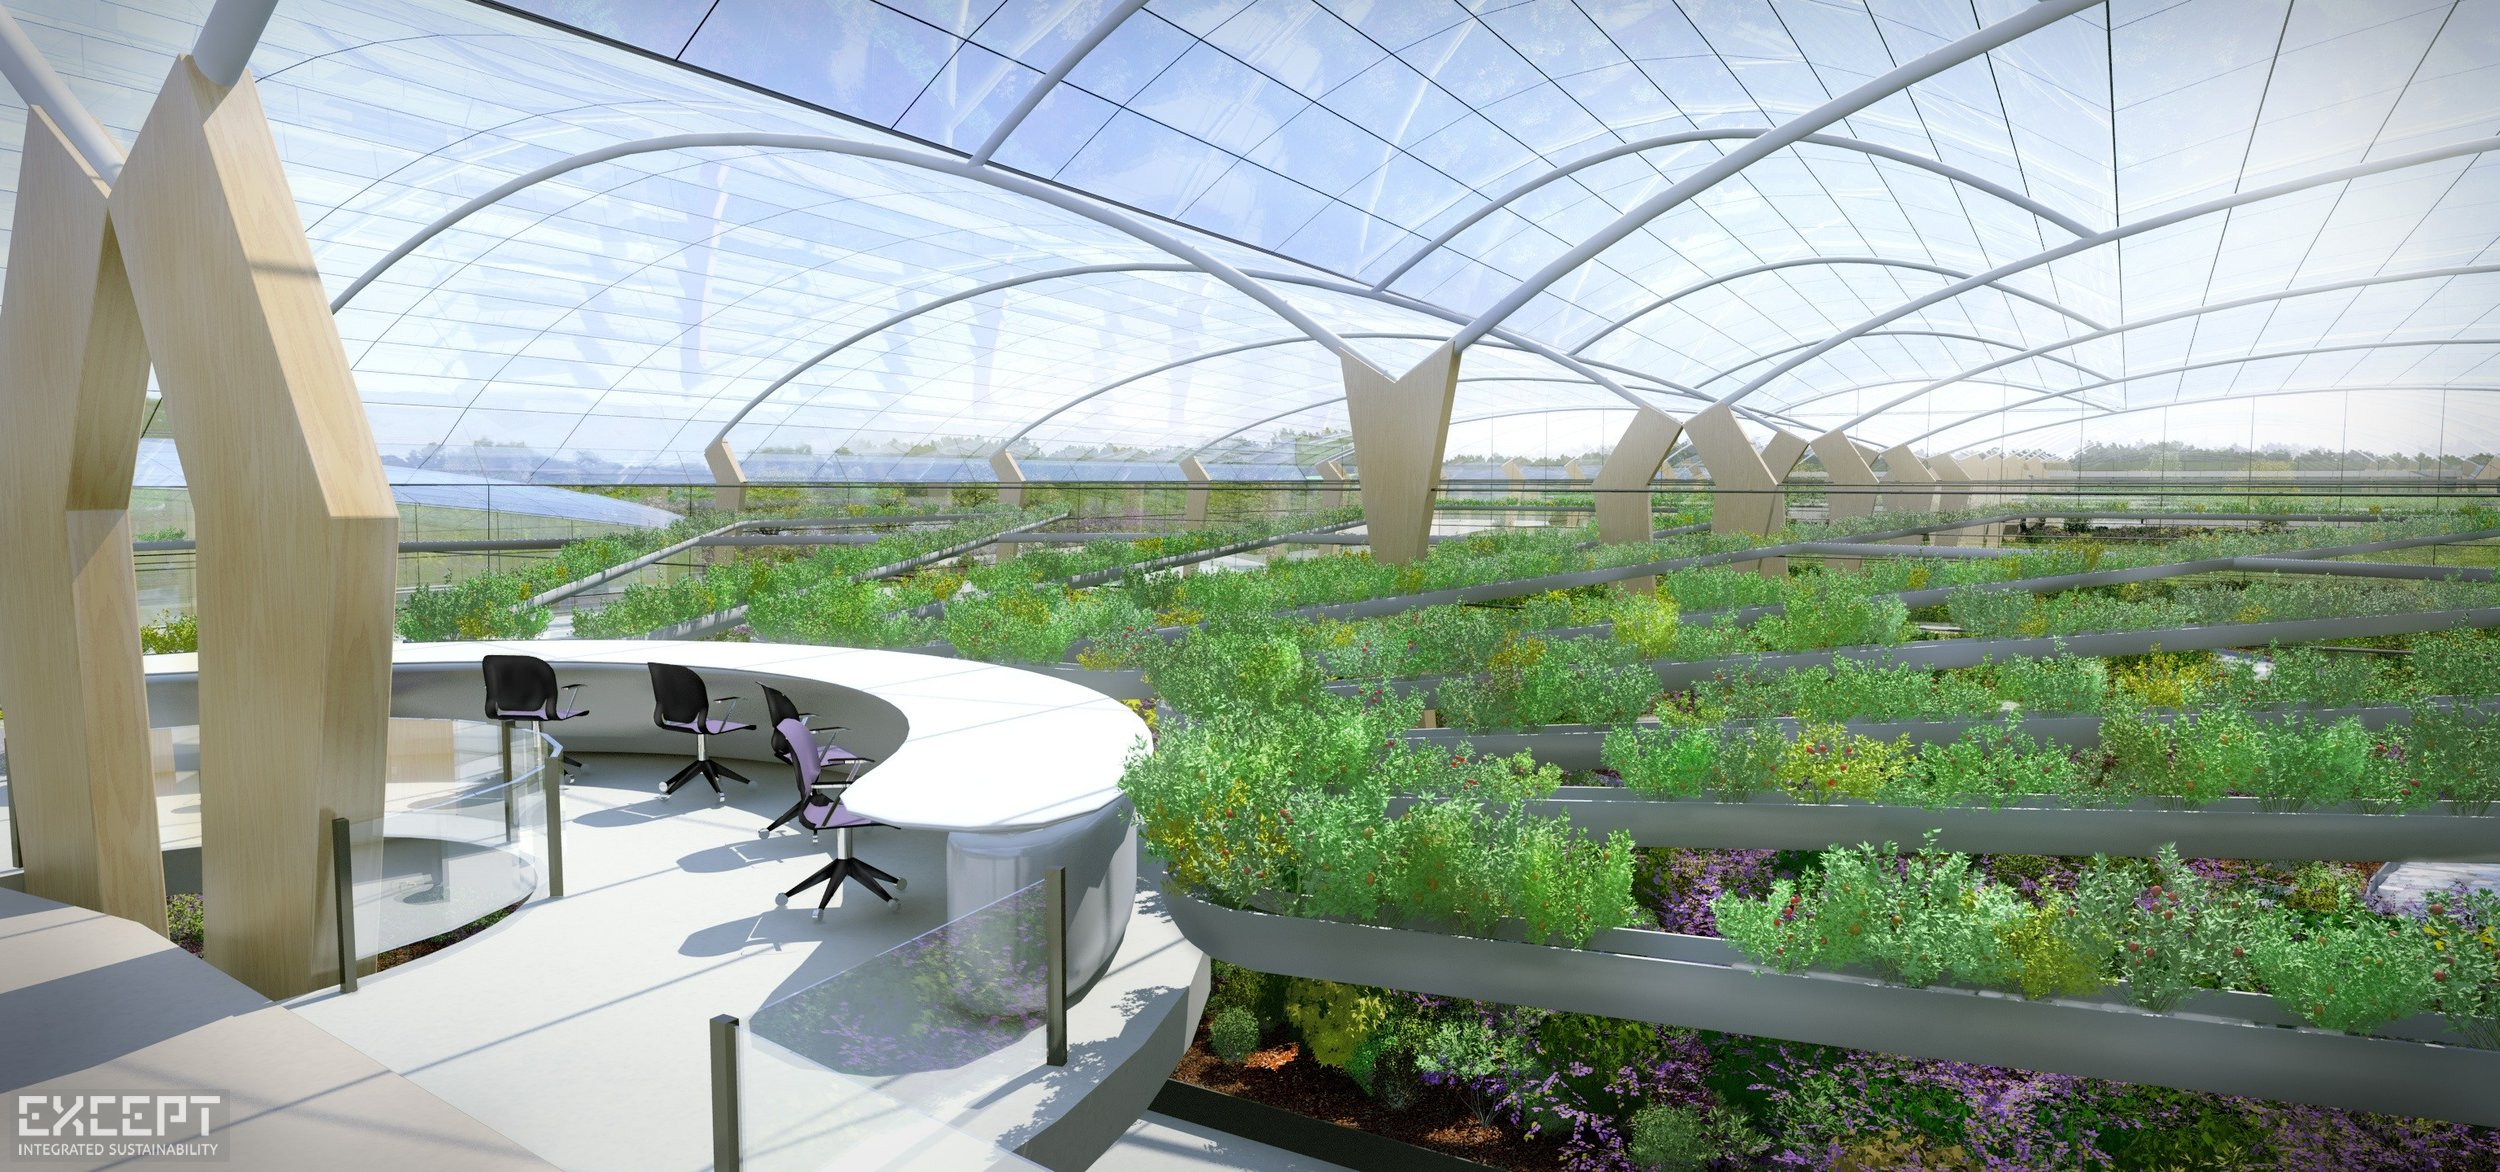 Polydome Inside Desk - A vision of a high production Polydome with central plant handling.